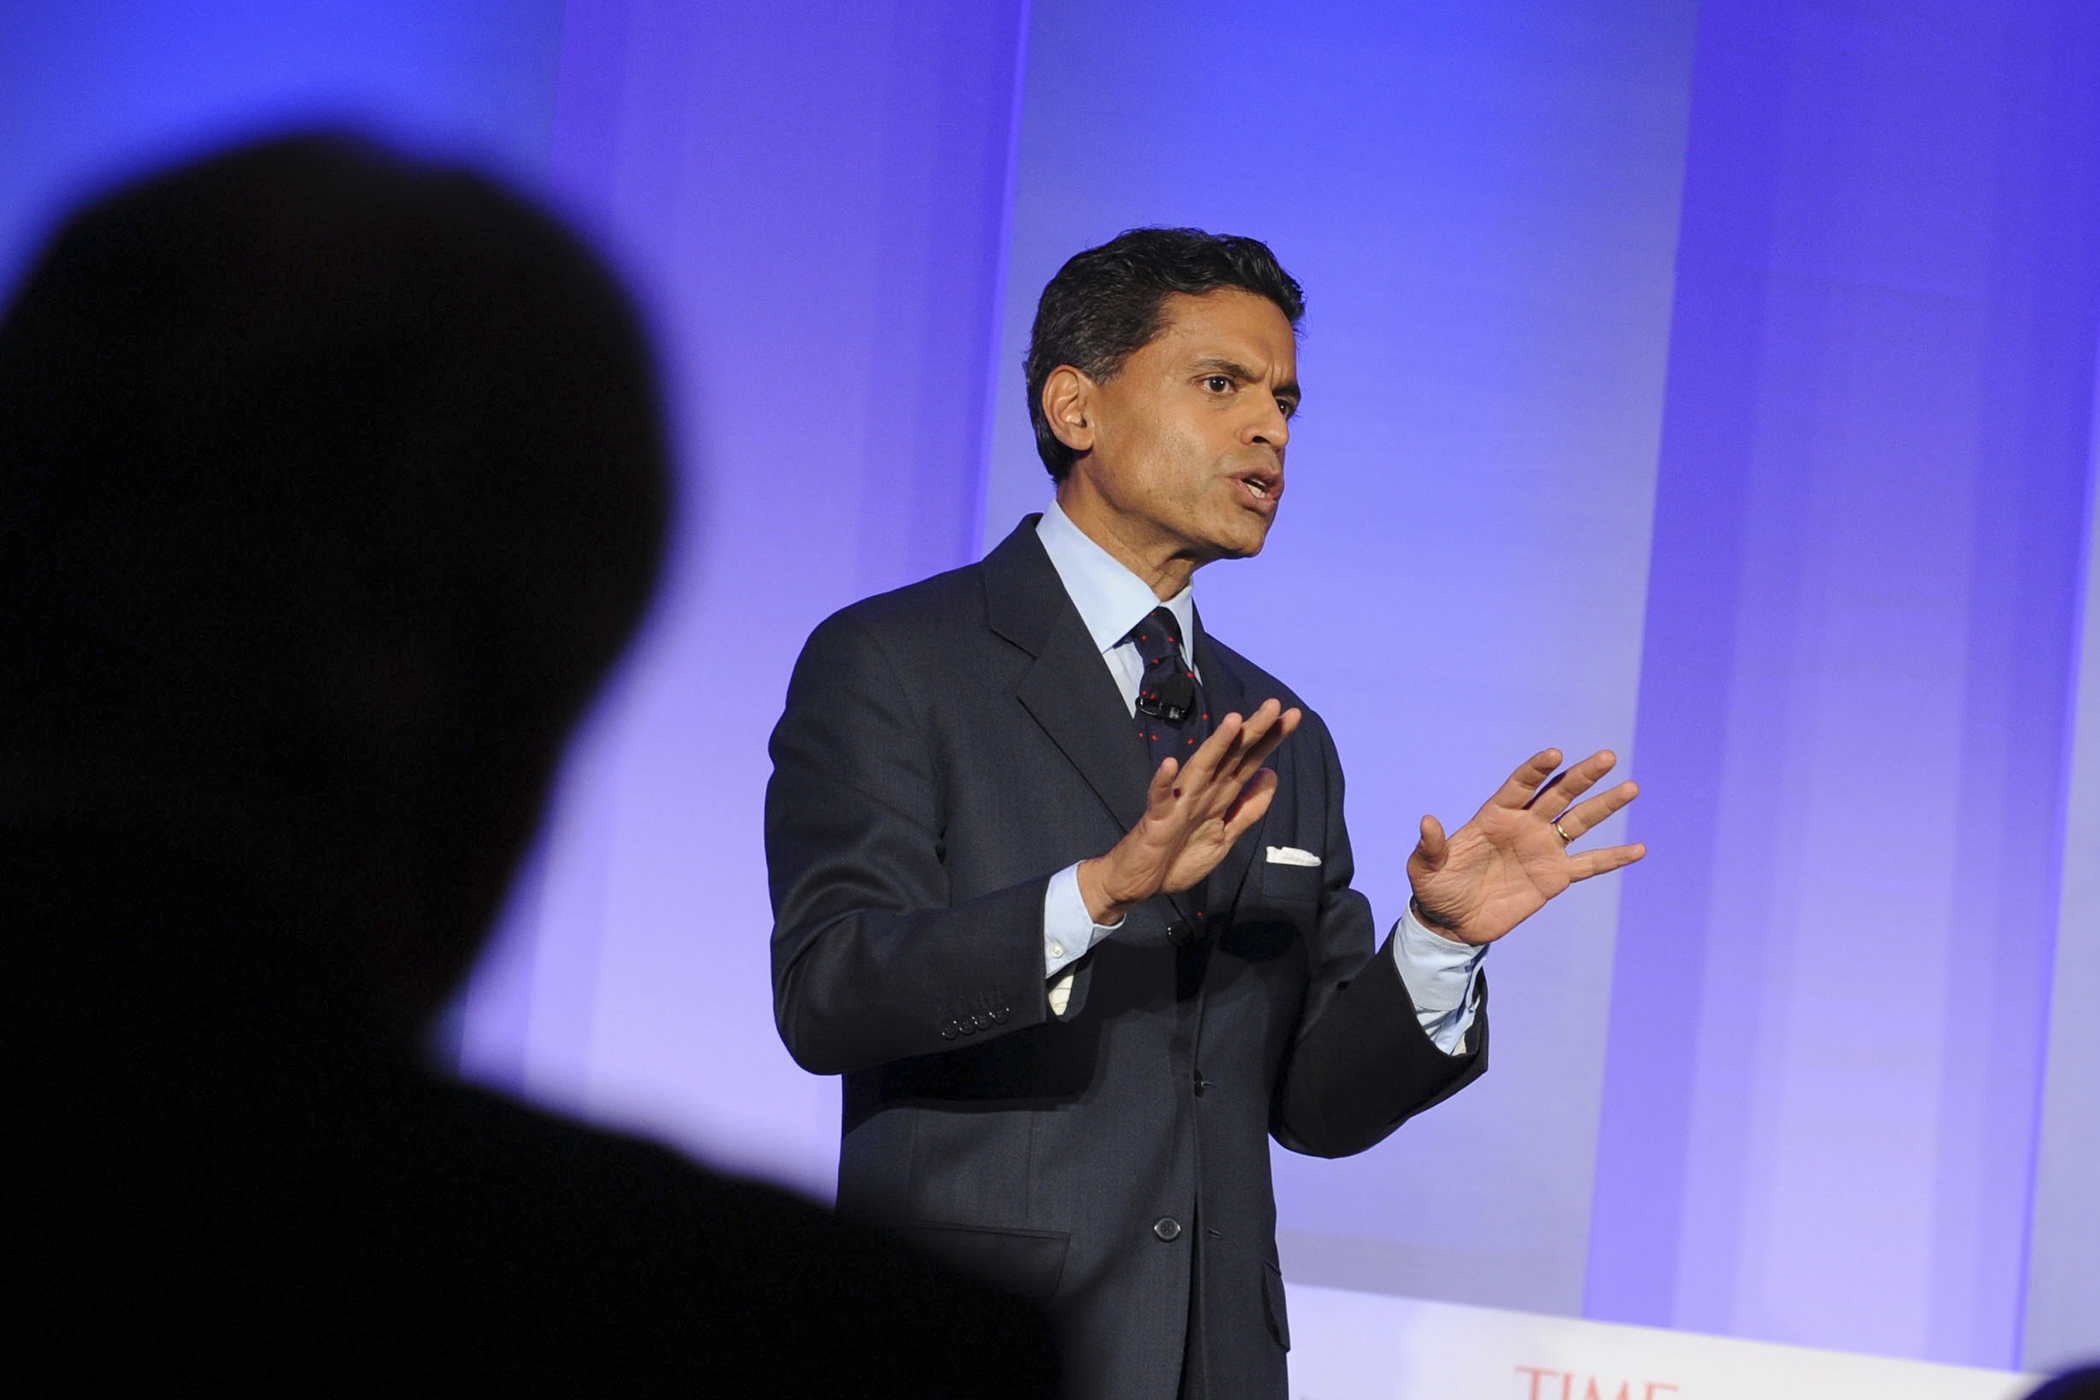 Fareed Zakaria speaks at the TIME Summit On Higher Education Day 1 at Time Warner Center on September 19, 2013 in New York City.